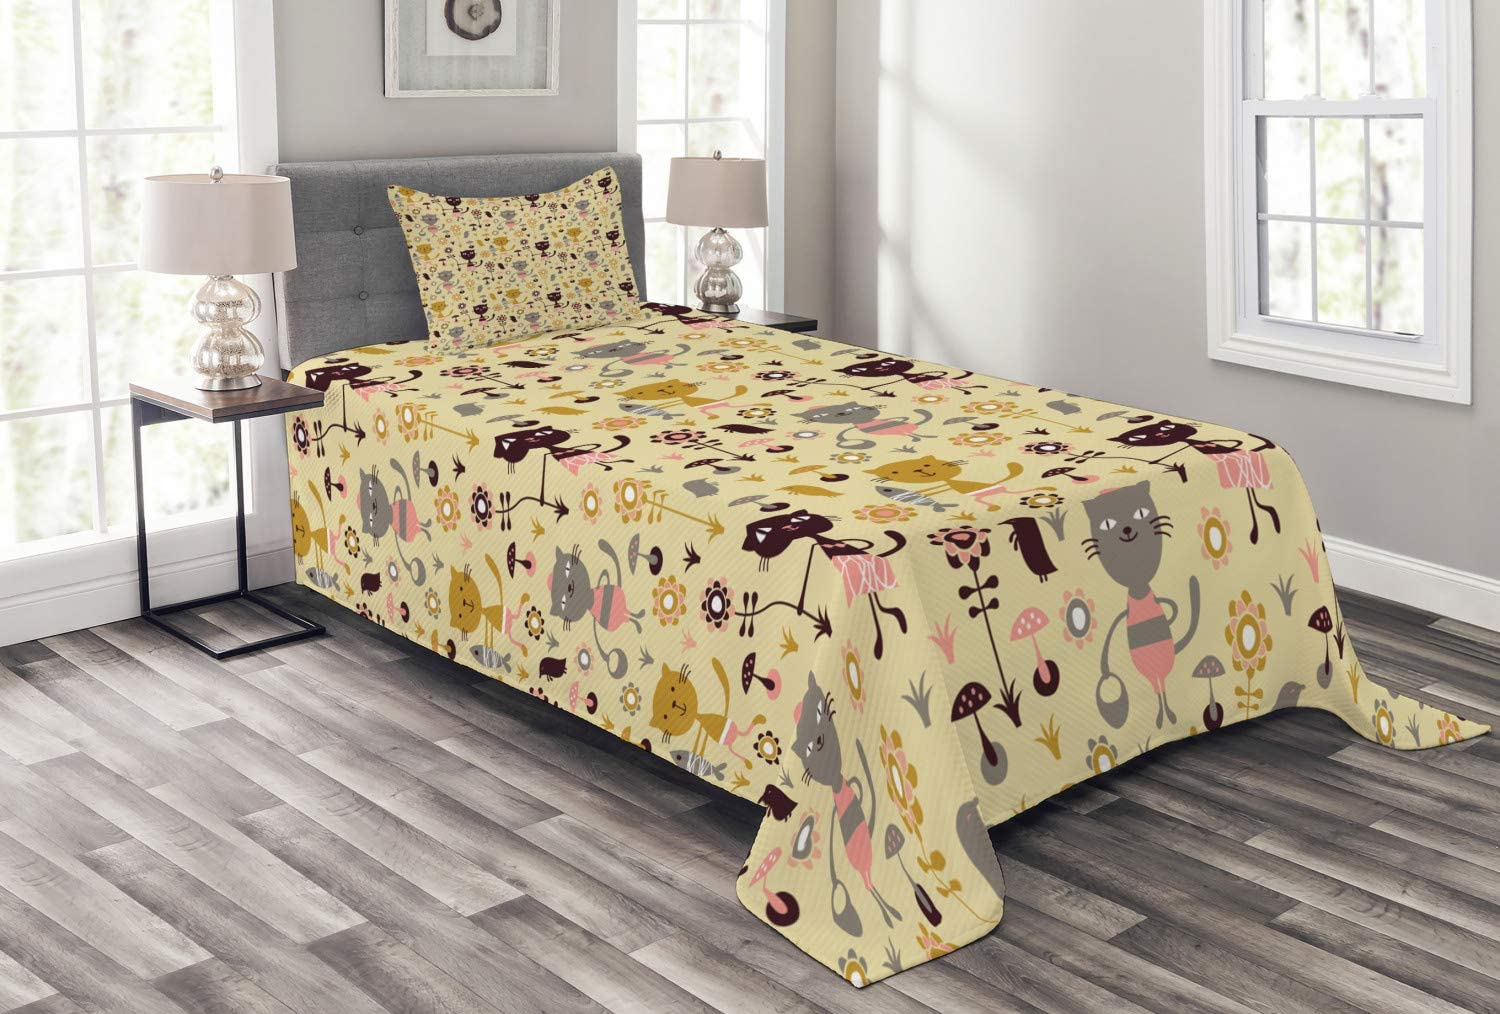 Ambesonne Cat Bedspread Tulsa Mall Feline Animals Fish Flowers Holding and Purchase